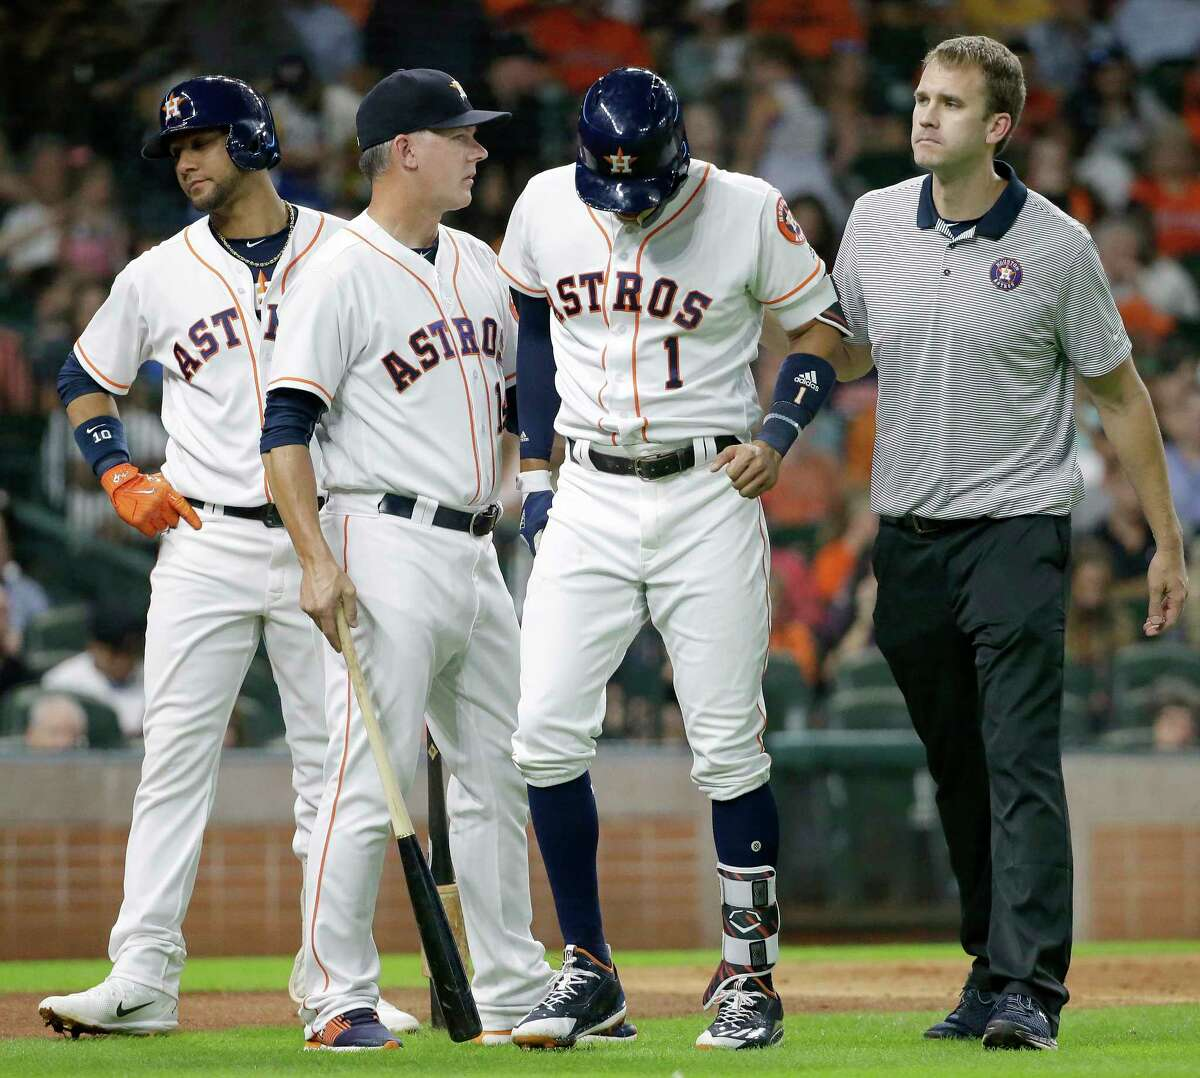 PHOTOS: Notable injuries in Houston sports history Houston Astros Yuli Gurriel, left, waits as Carlos Correa leaves the field with manager A.J. Hinch and trainer Jeremiah Randall, right, during the fourth inning after injuring it at bat against the Seattle Mariners at Minute Maid Park on July 17, 2017 in Houston, Texas. Correa left the game. Browse through the photos above for a look back at notable injuries in the history of Houston sports.